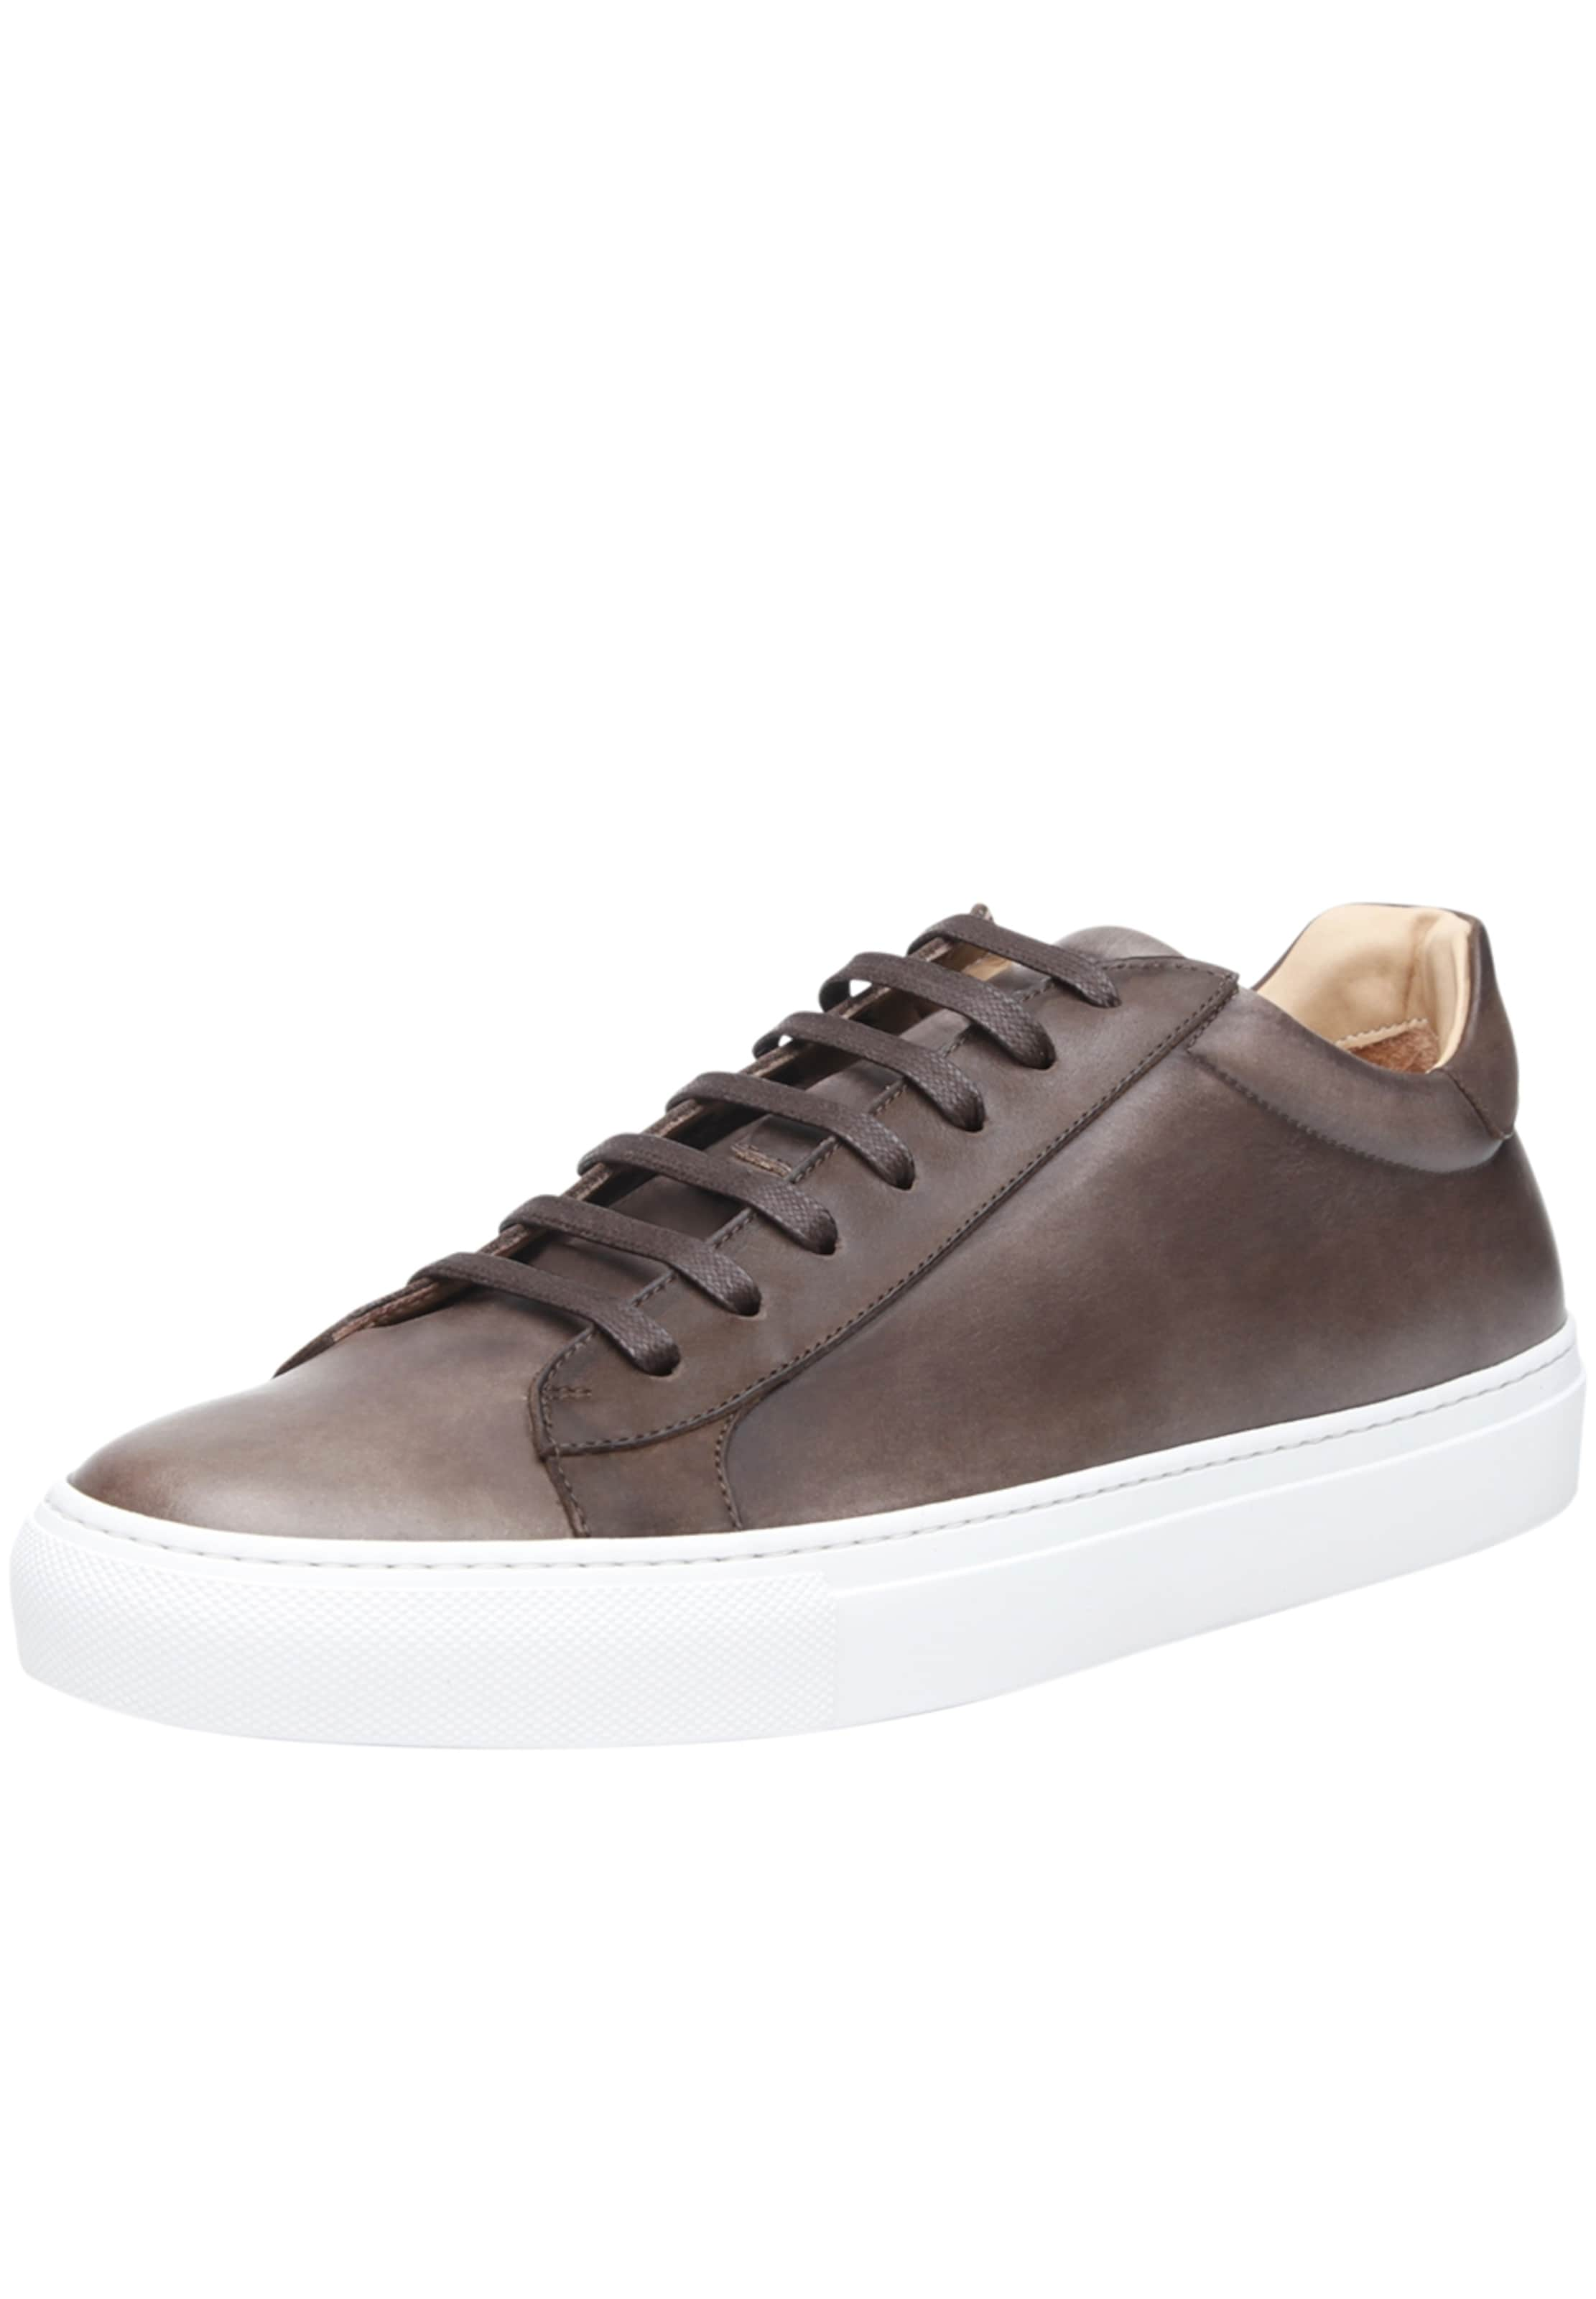 SHOEPASSION Sneaker No. 53 MS Hohe Qualität